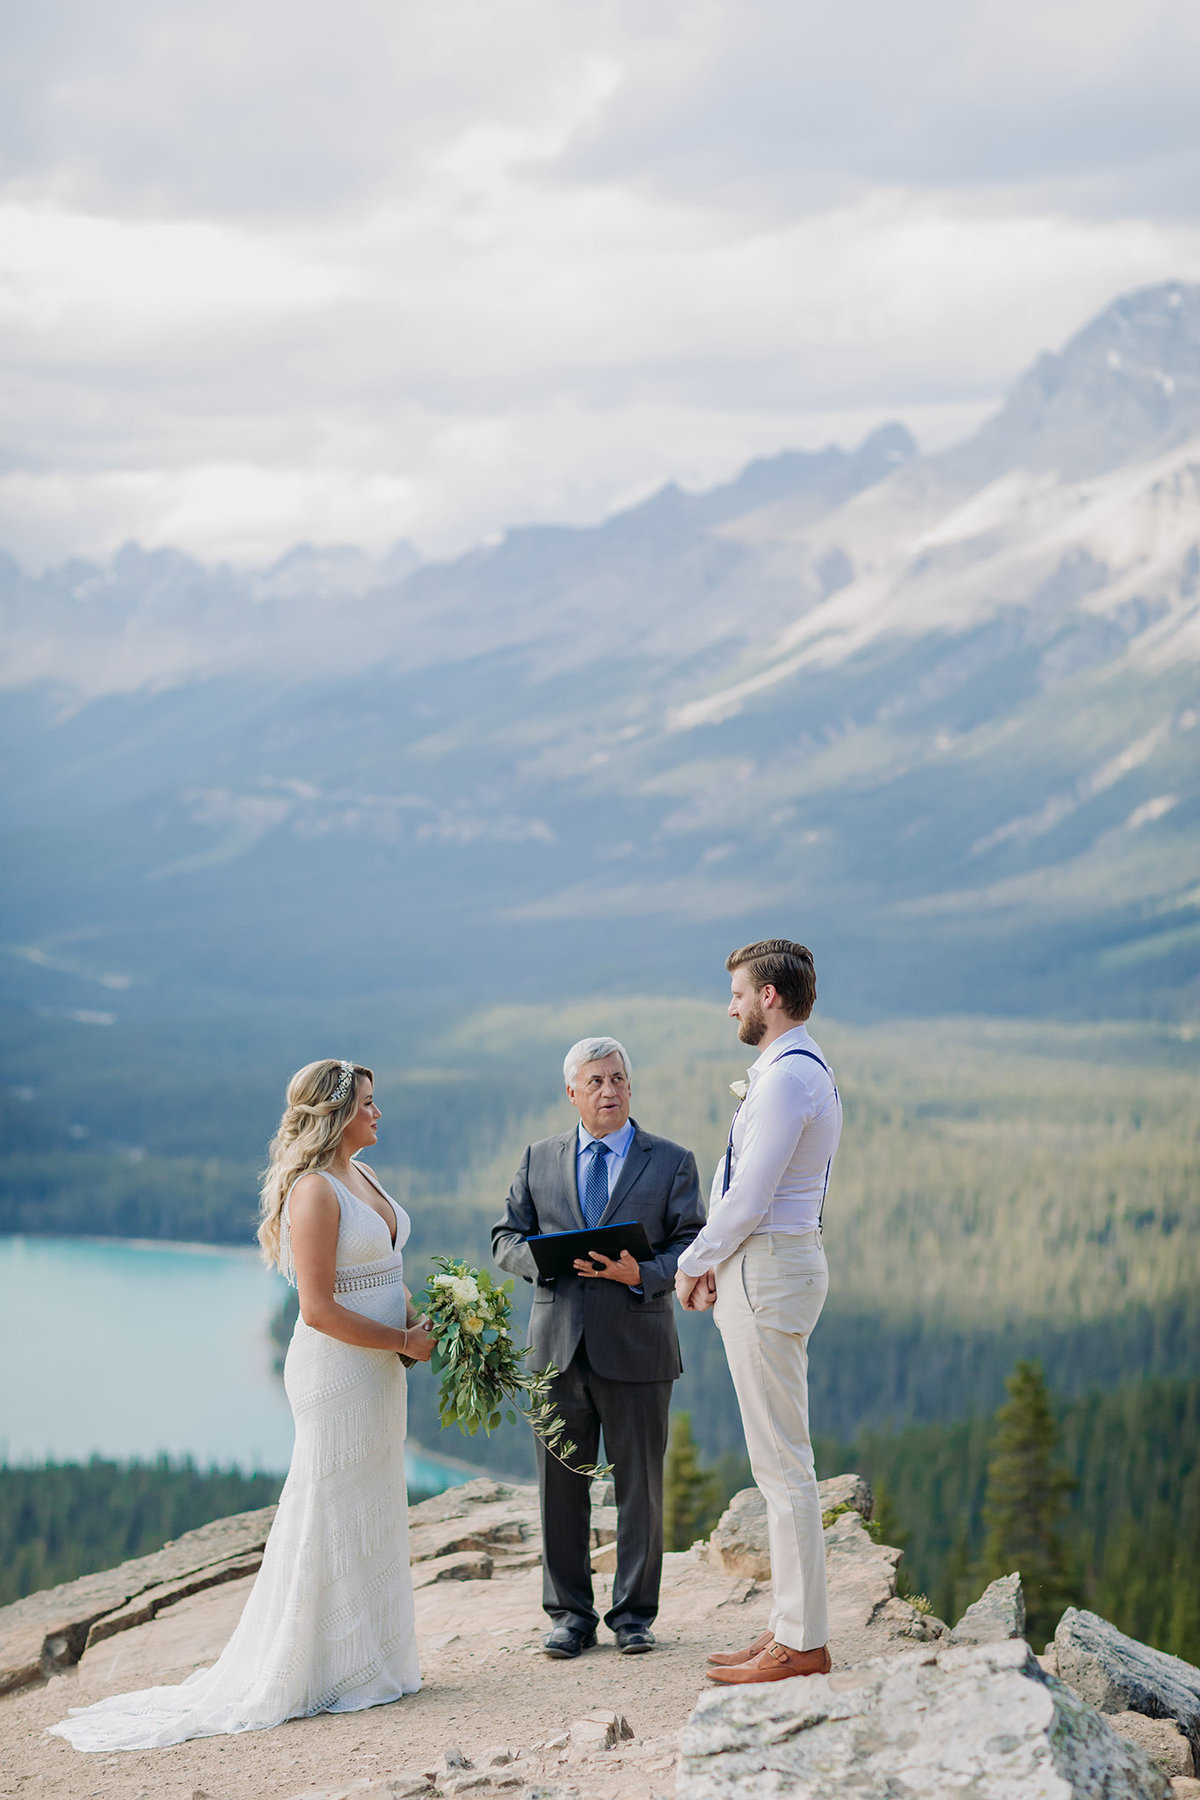 01-peyto-lake-intimate-wedding-ceremony-icefields-parkway-banff-national-park-elopement-photographer